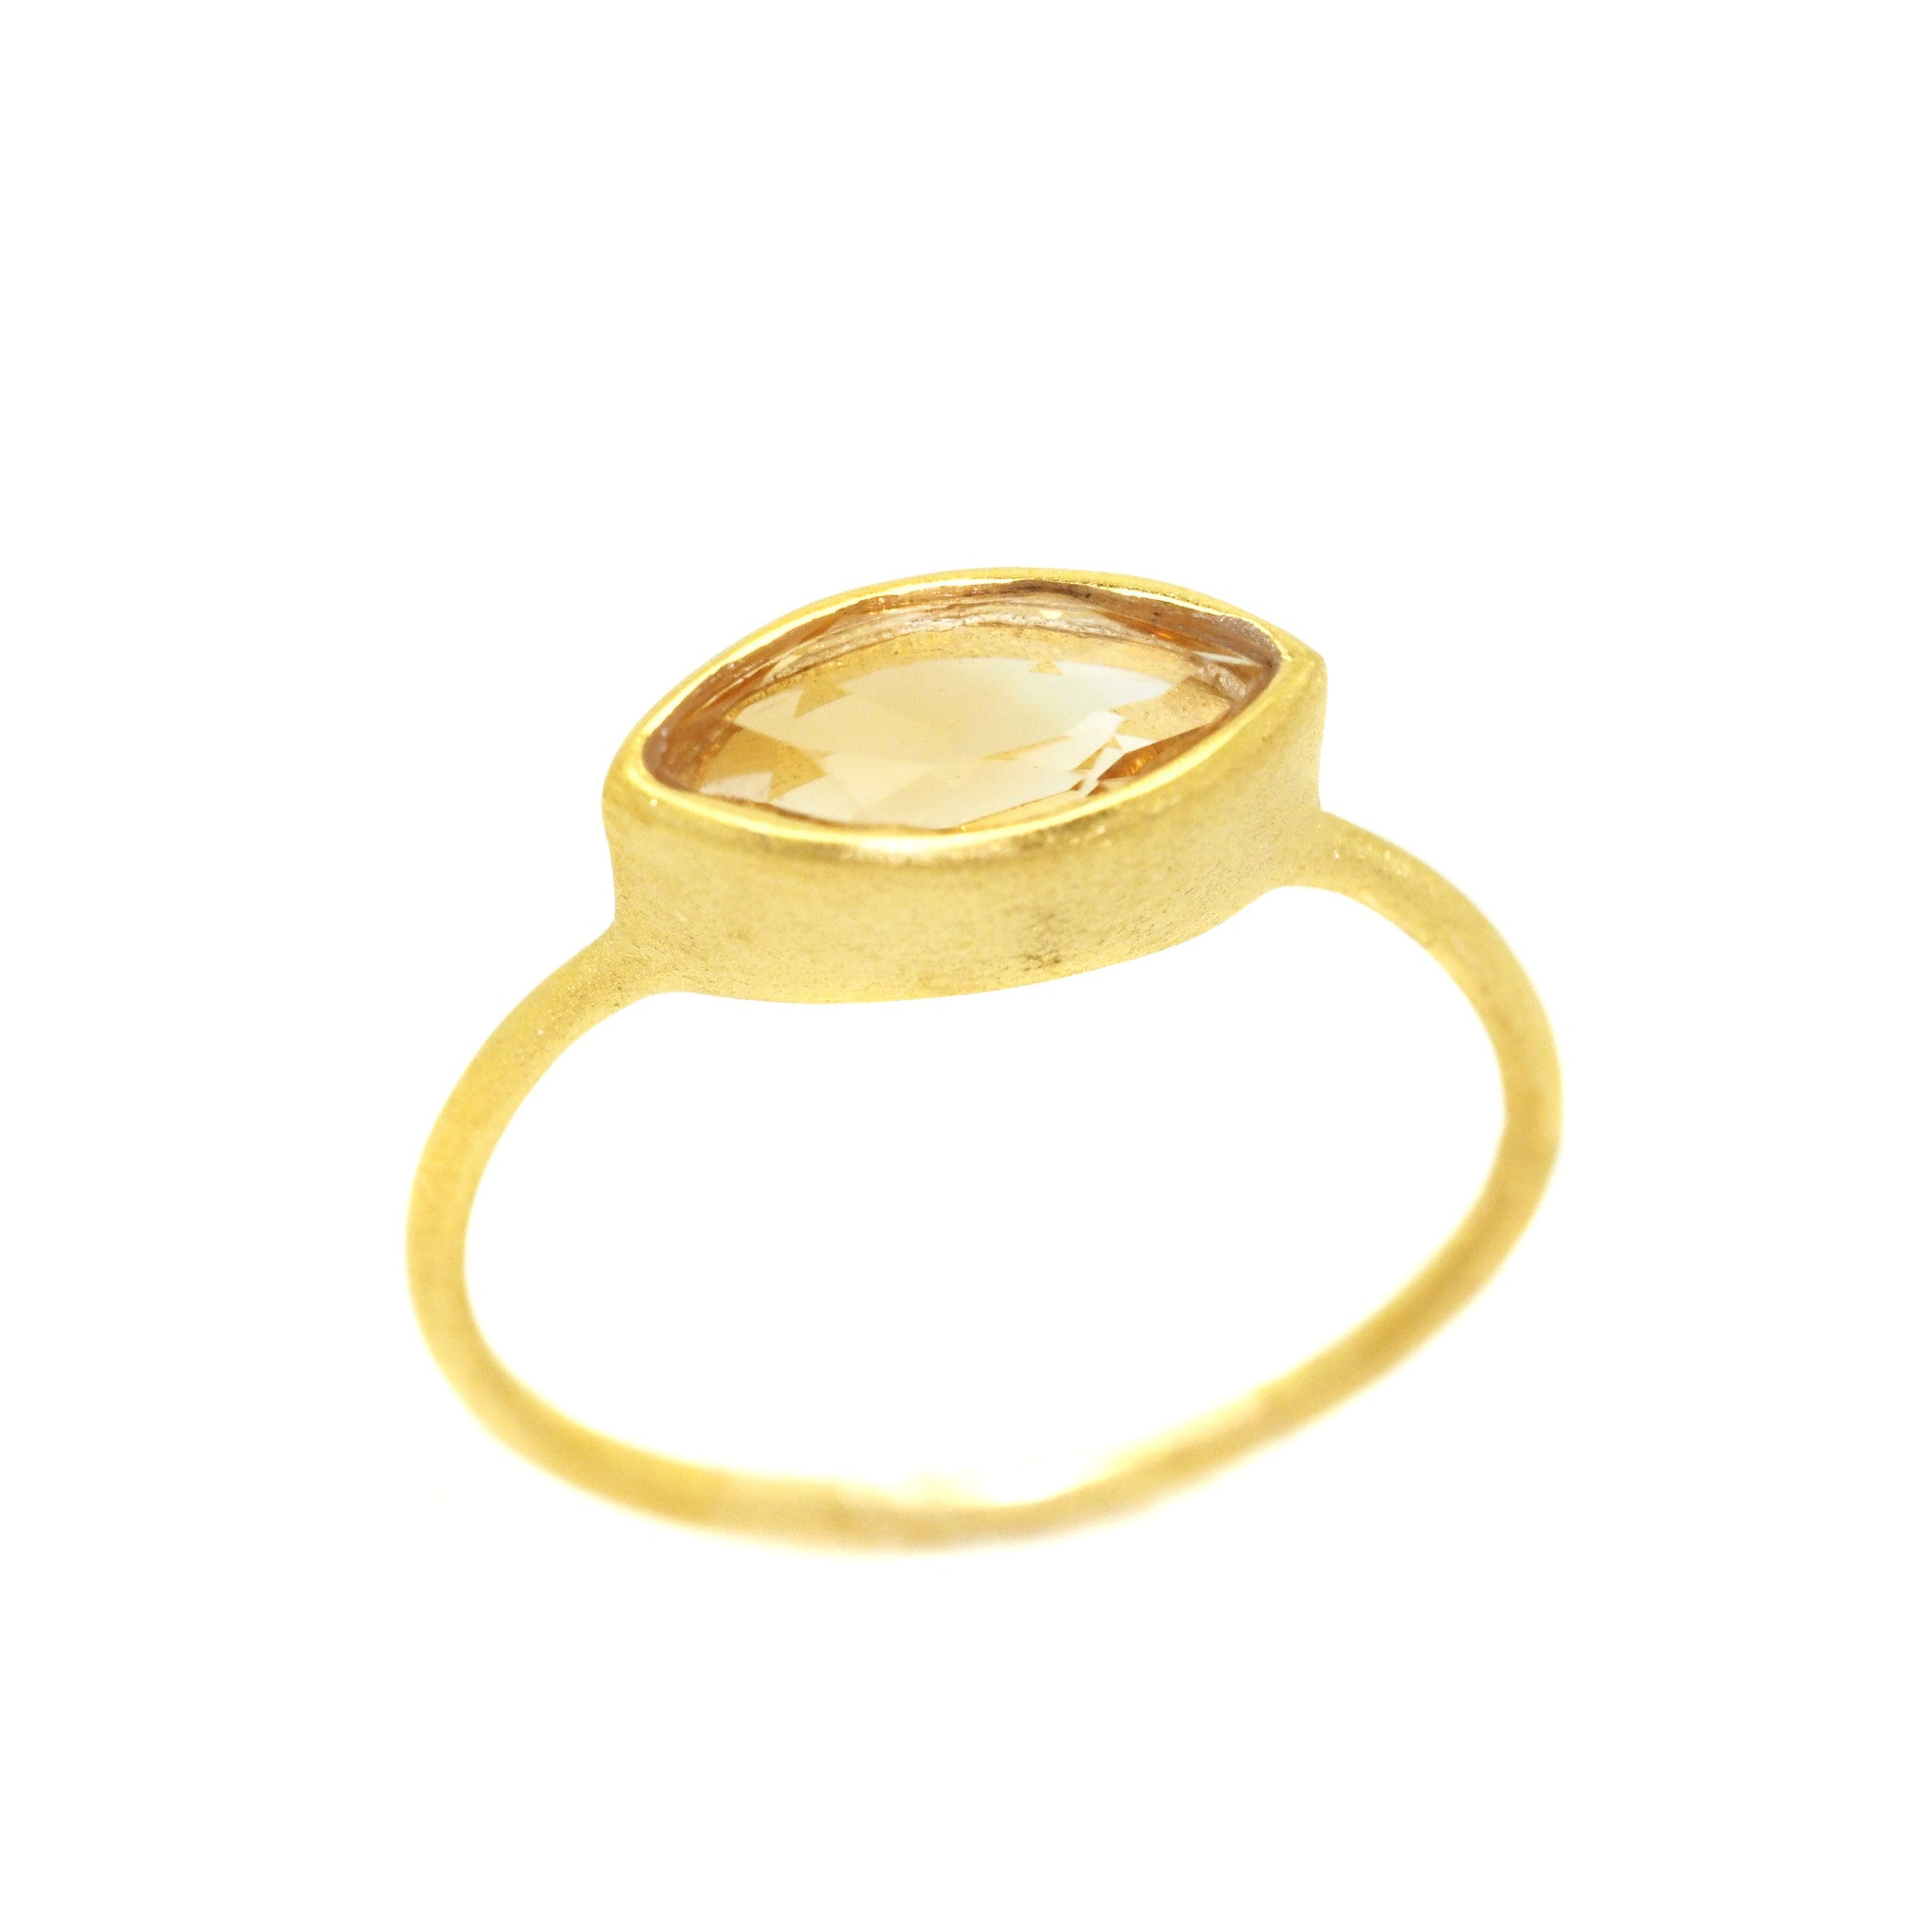 Citrine Gemstone Gold Ring